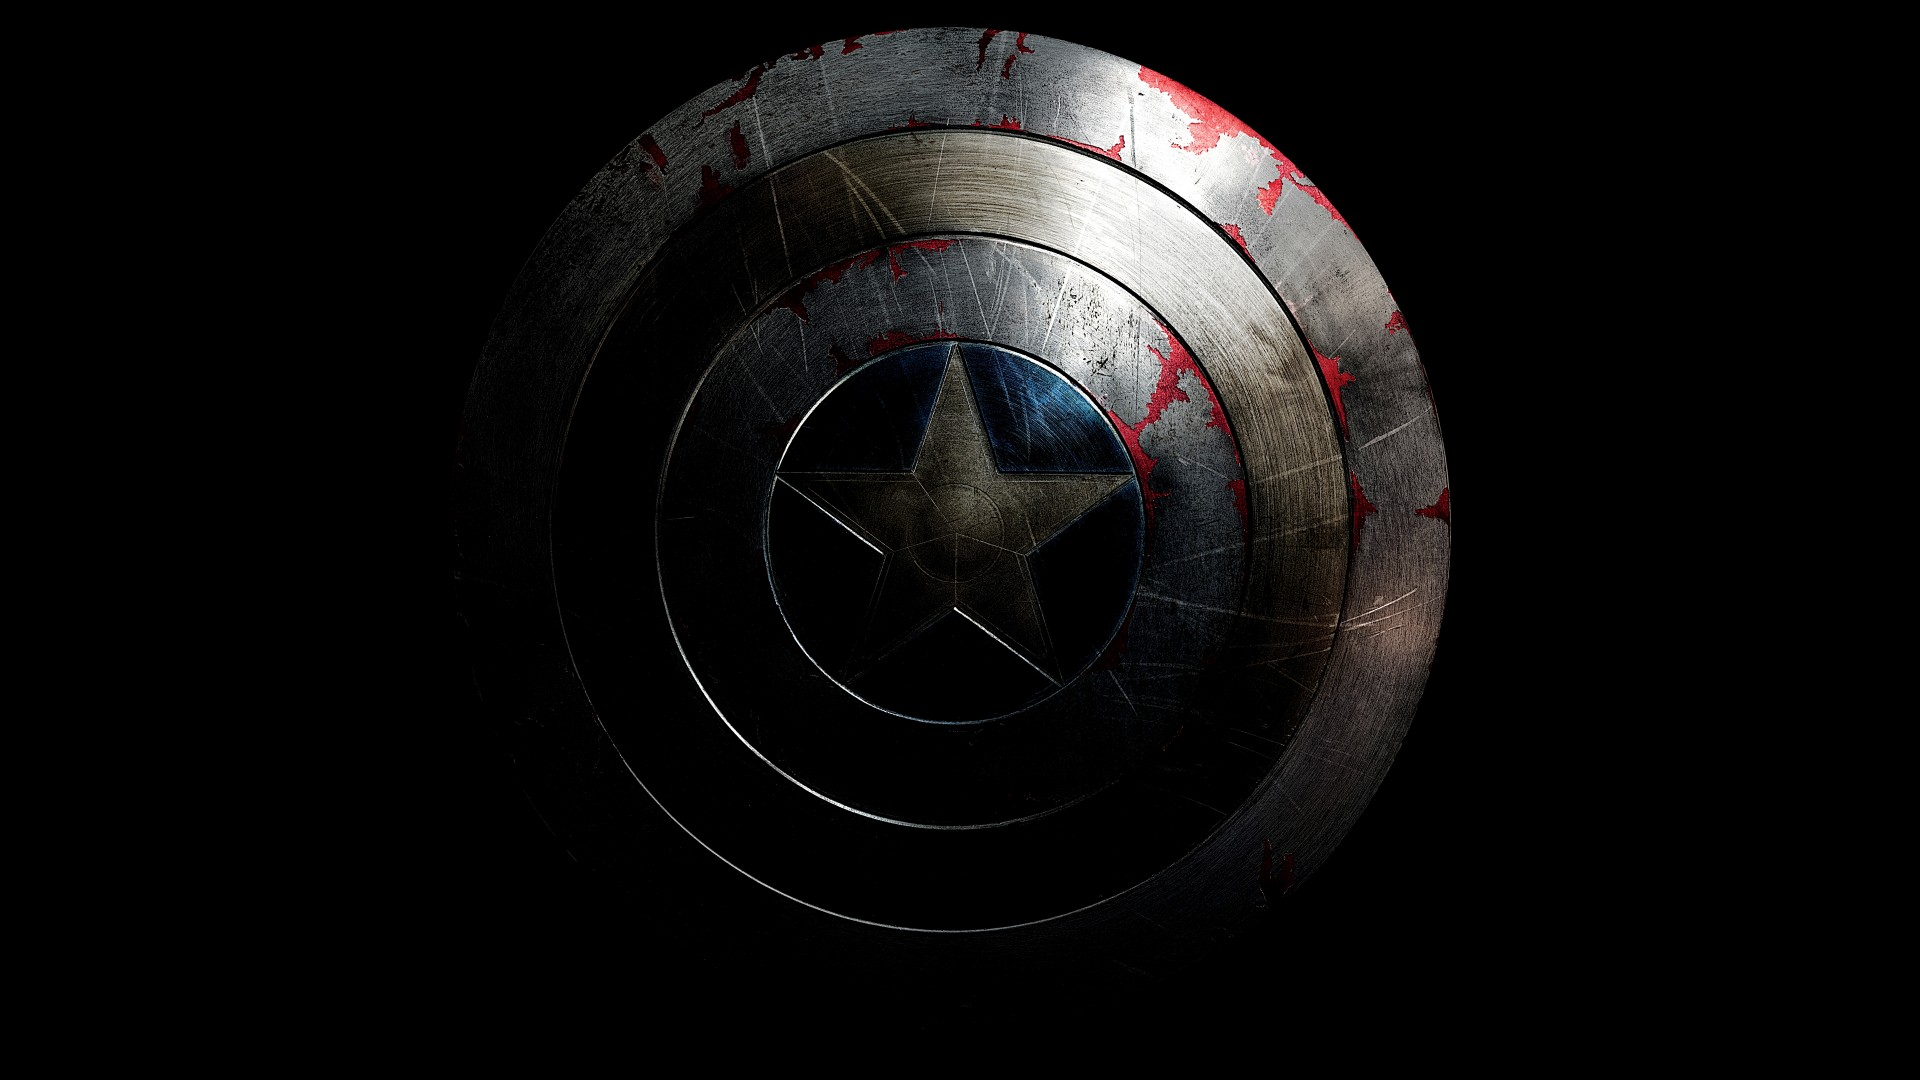 3d Cars Wallpapers For Windows 7 Captain America Shield 4k 8k Wallpapers Hd Wallpapers